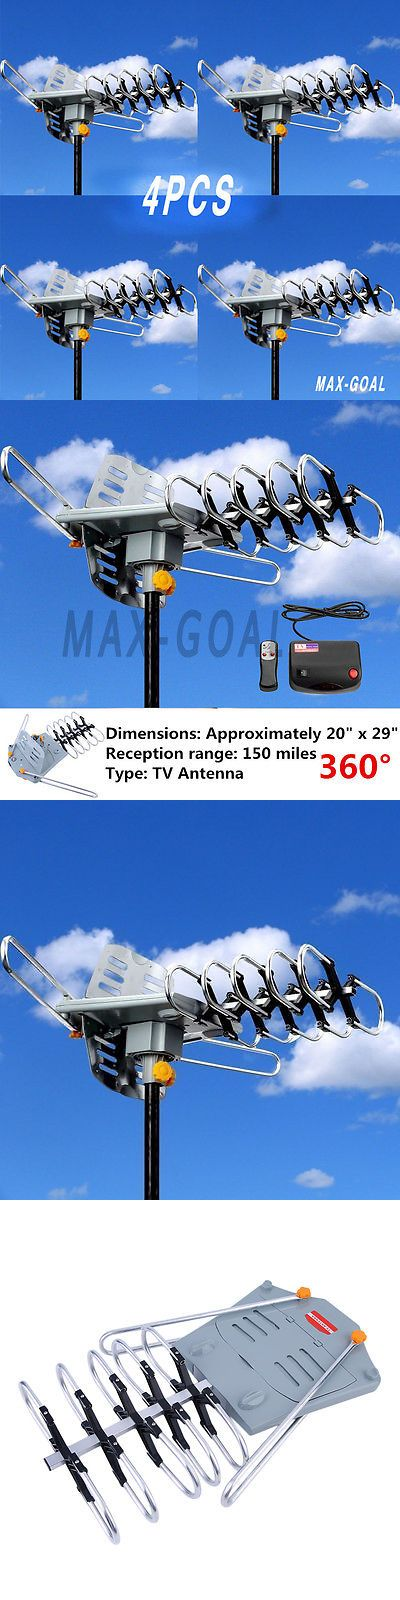 Antennas and Dishes: 2017 Hdtv 1080P Outdoor Amplified Antenna 360 Rotor Digital Hd Tv 150 Mile Lot -> BUY IT NOW ONLY: $216.95 on eBay!